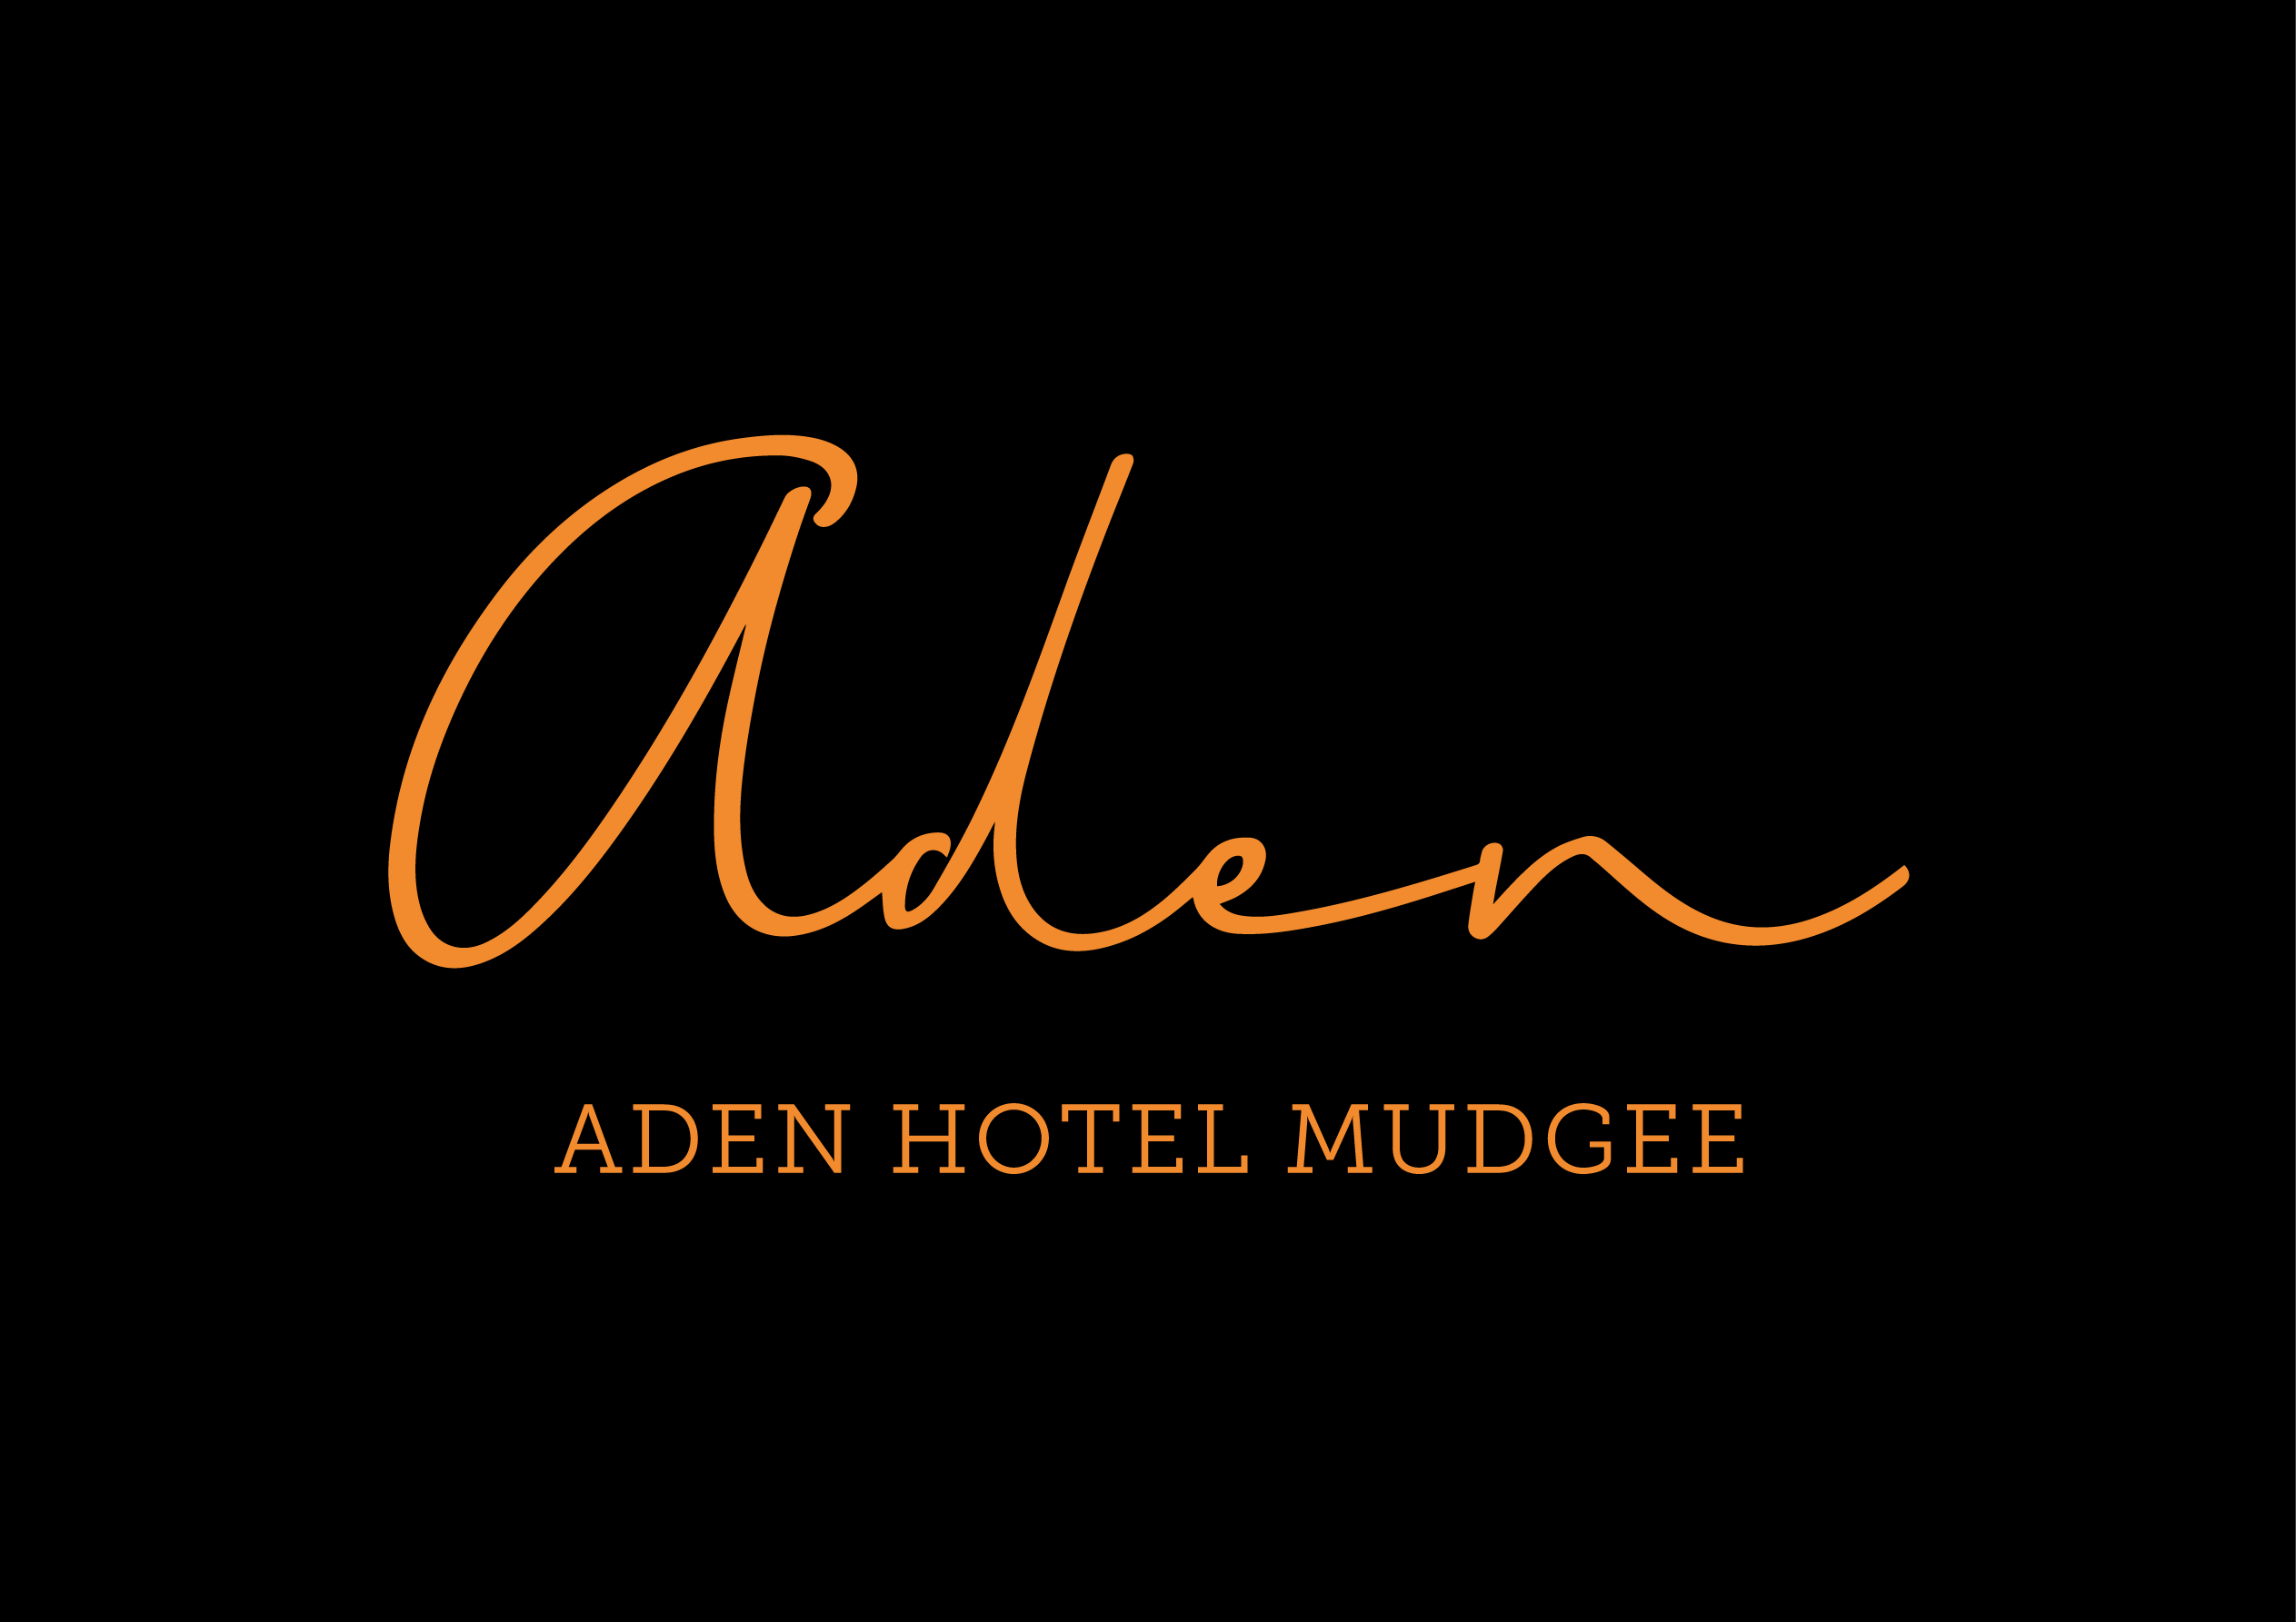 Comfort Inn Aden Hotel Mudgee - Accommodation Perth